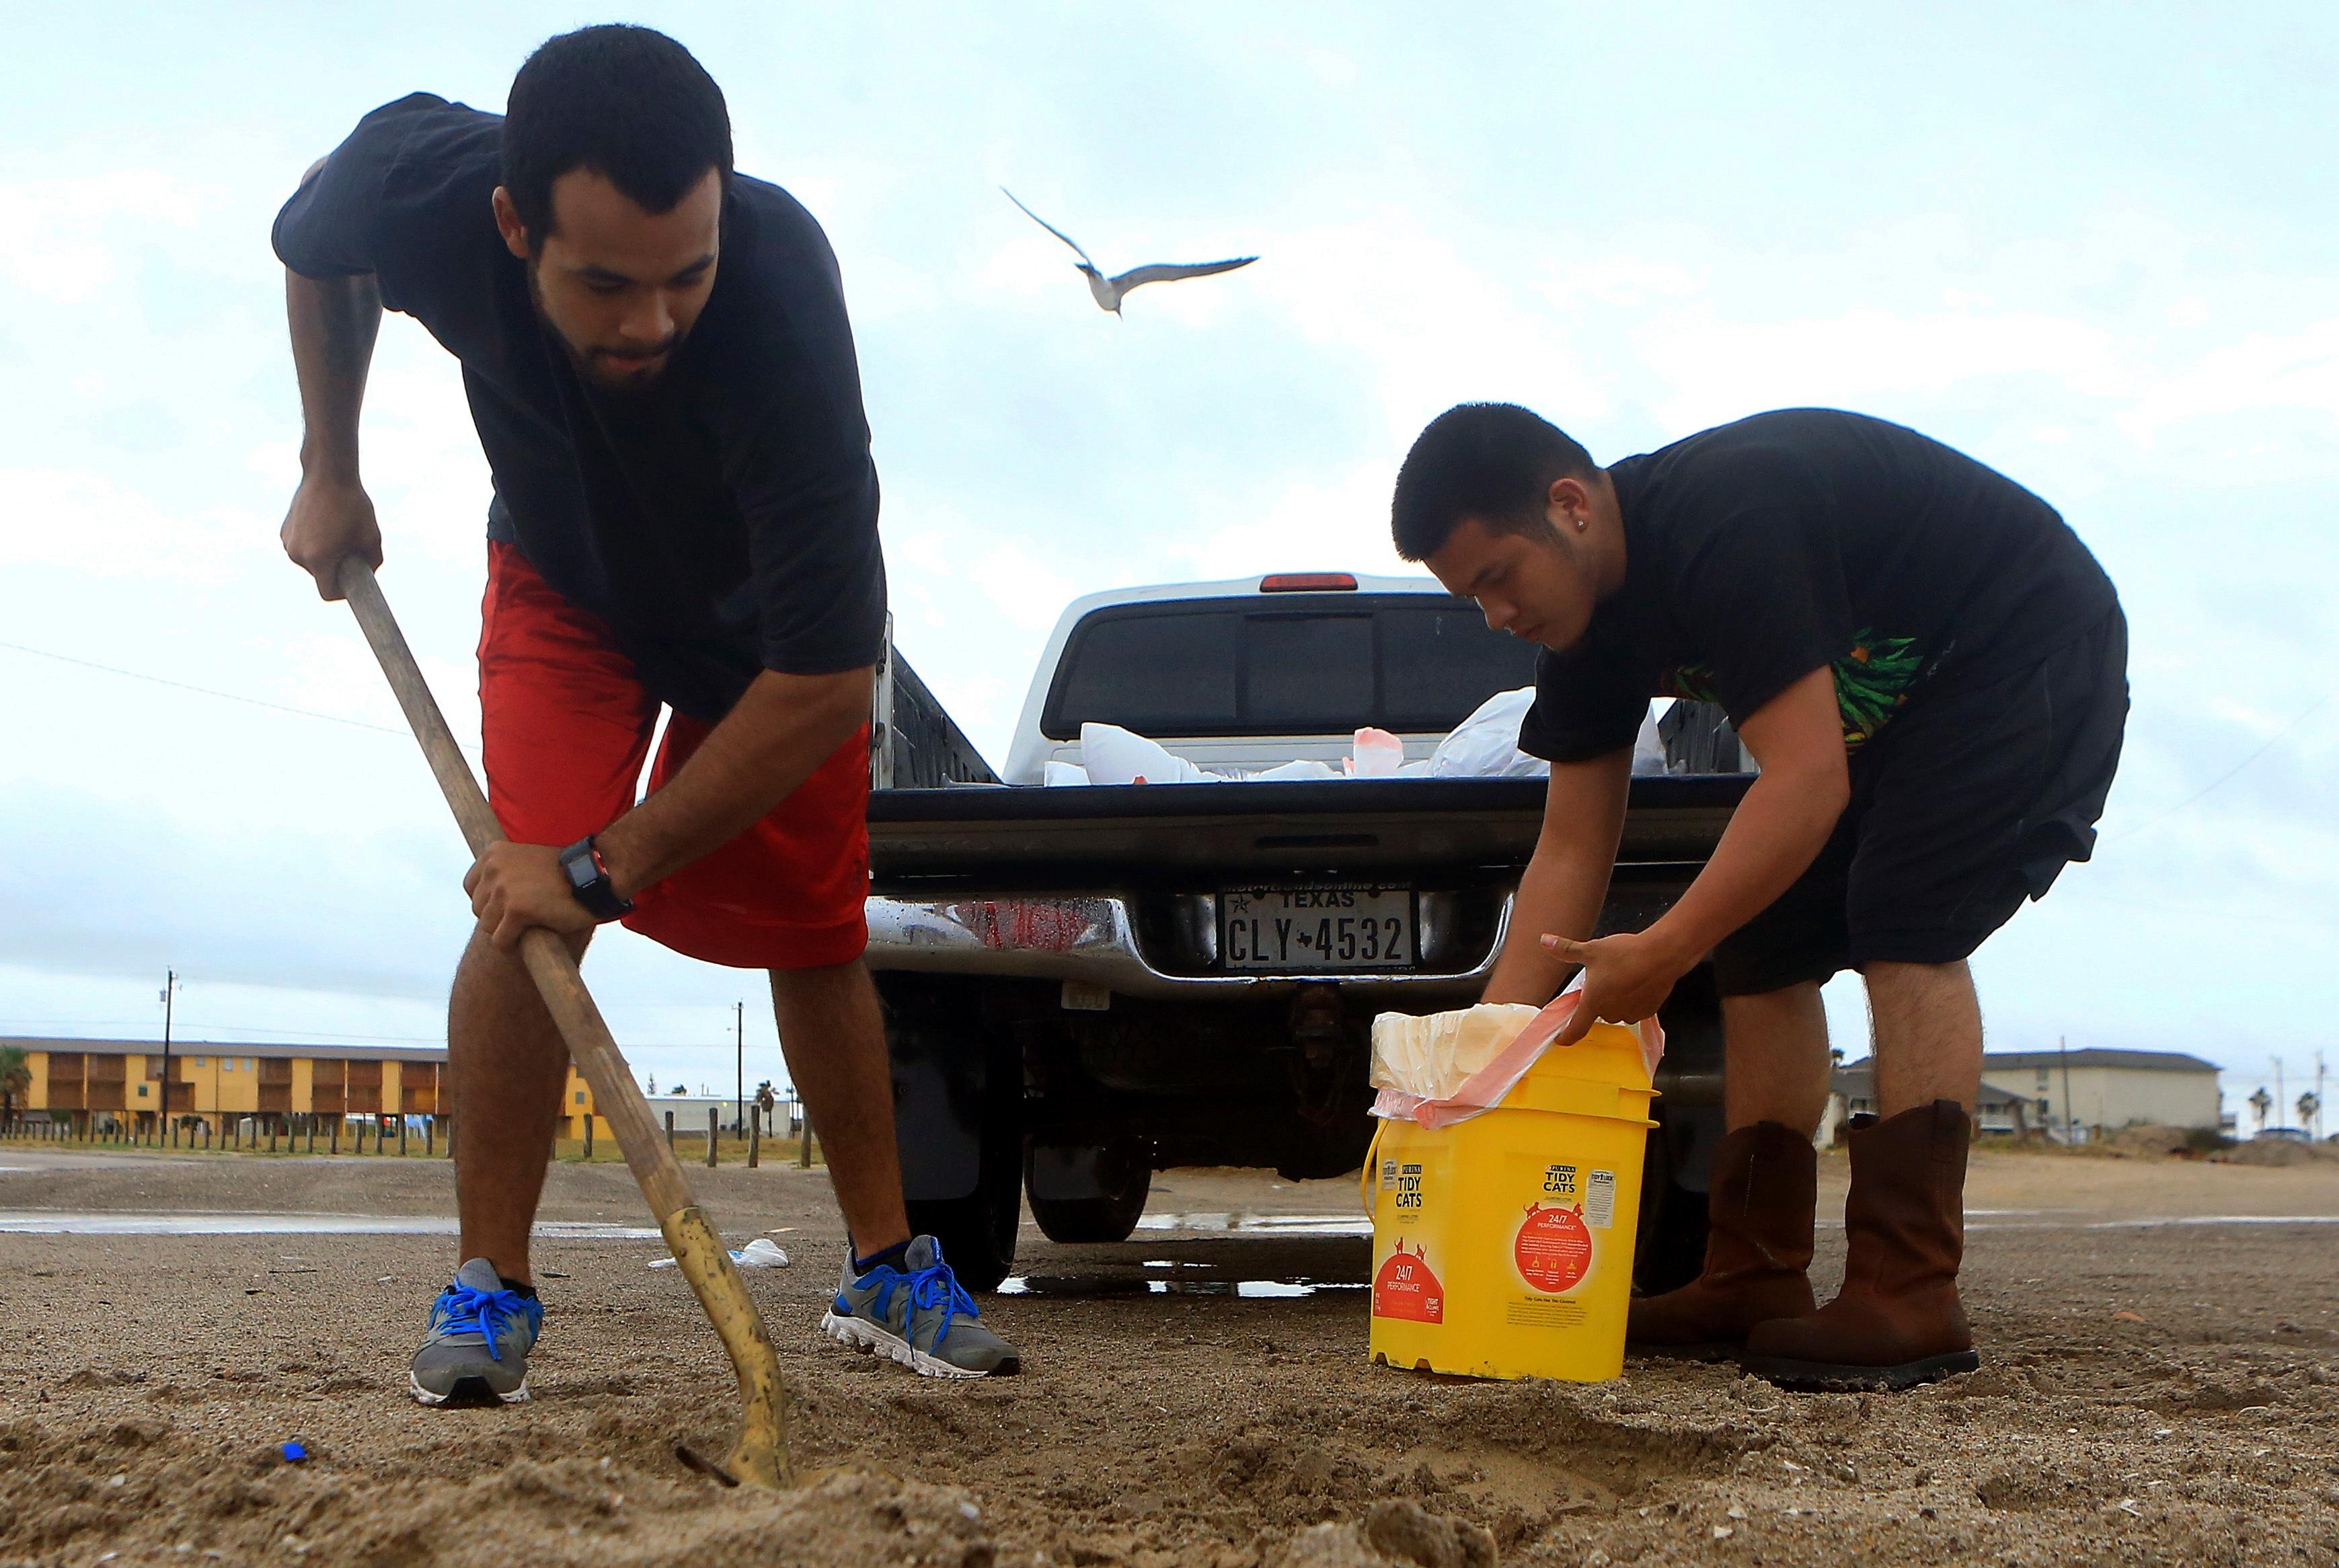 Oscar Aldana, left, and Abraham Blanco prepare sandbags to take home as Hurricane Harvey approaches the Coastal Bend area on Friday, Aug. 25, 2017, in Corpus Christi, Texas. The National Hurricane Center warns that conditions are deteriorating as Hurricane Harvey strengthens and slowly moves toward the Texas coast. (Gabe Hernandez/Corpus Christi Caller-Times via AP)